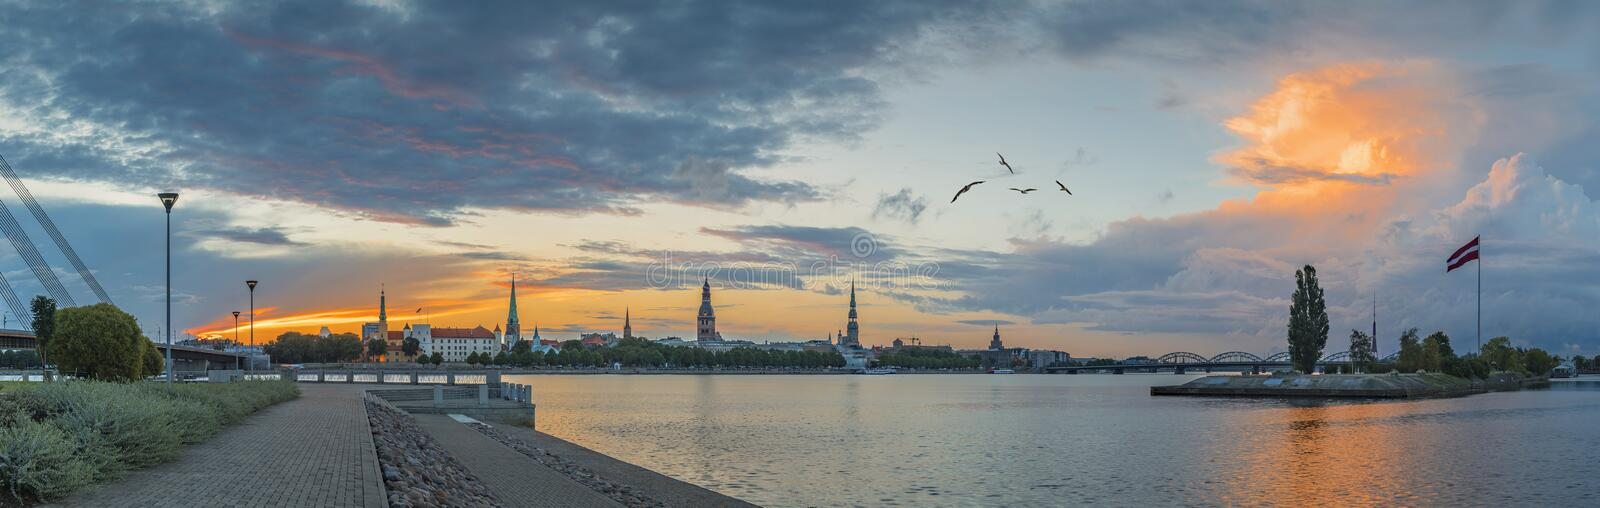 Old Riga with medieval buildings and waterfront, Latvia royalty free stock image